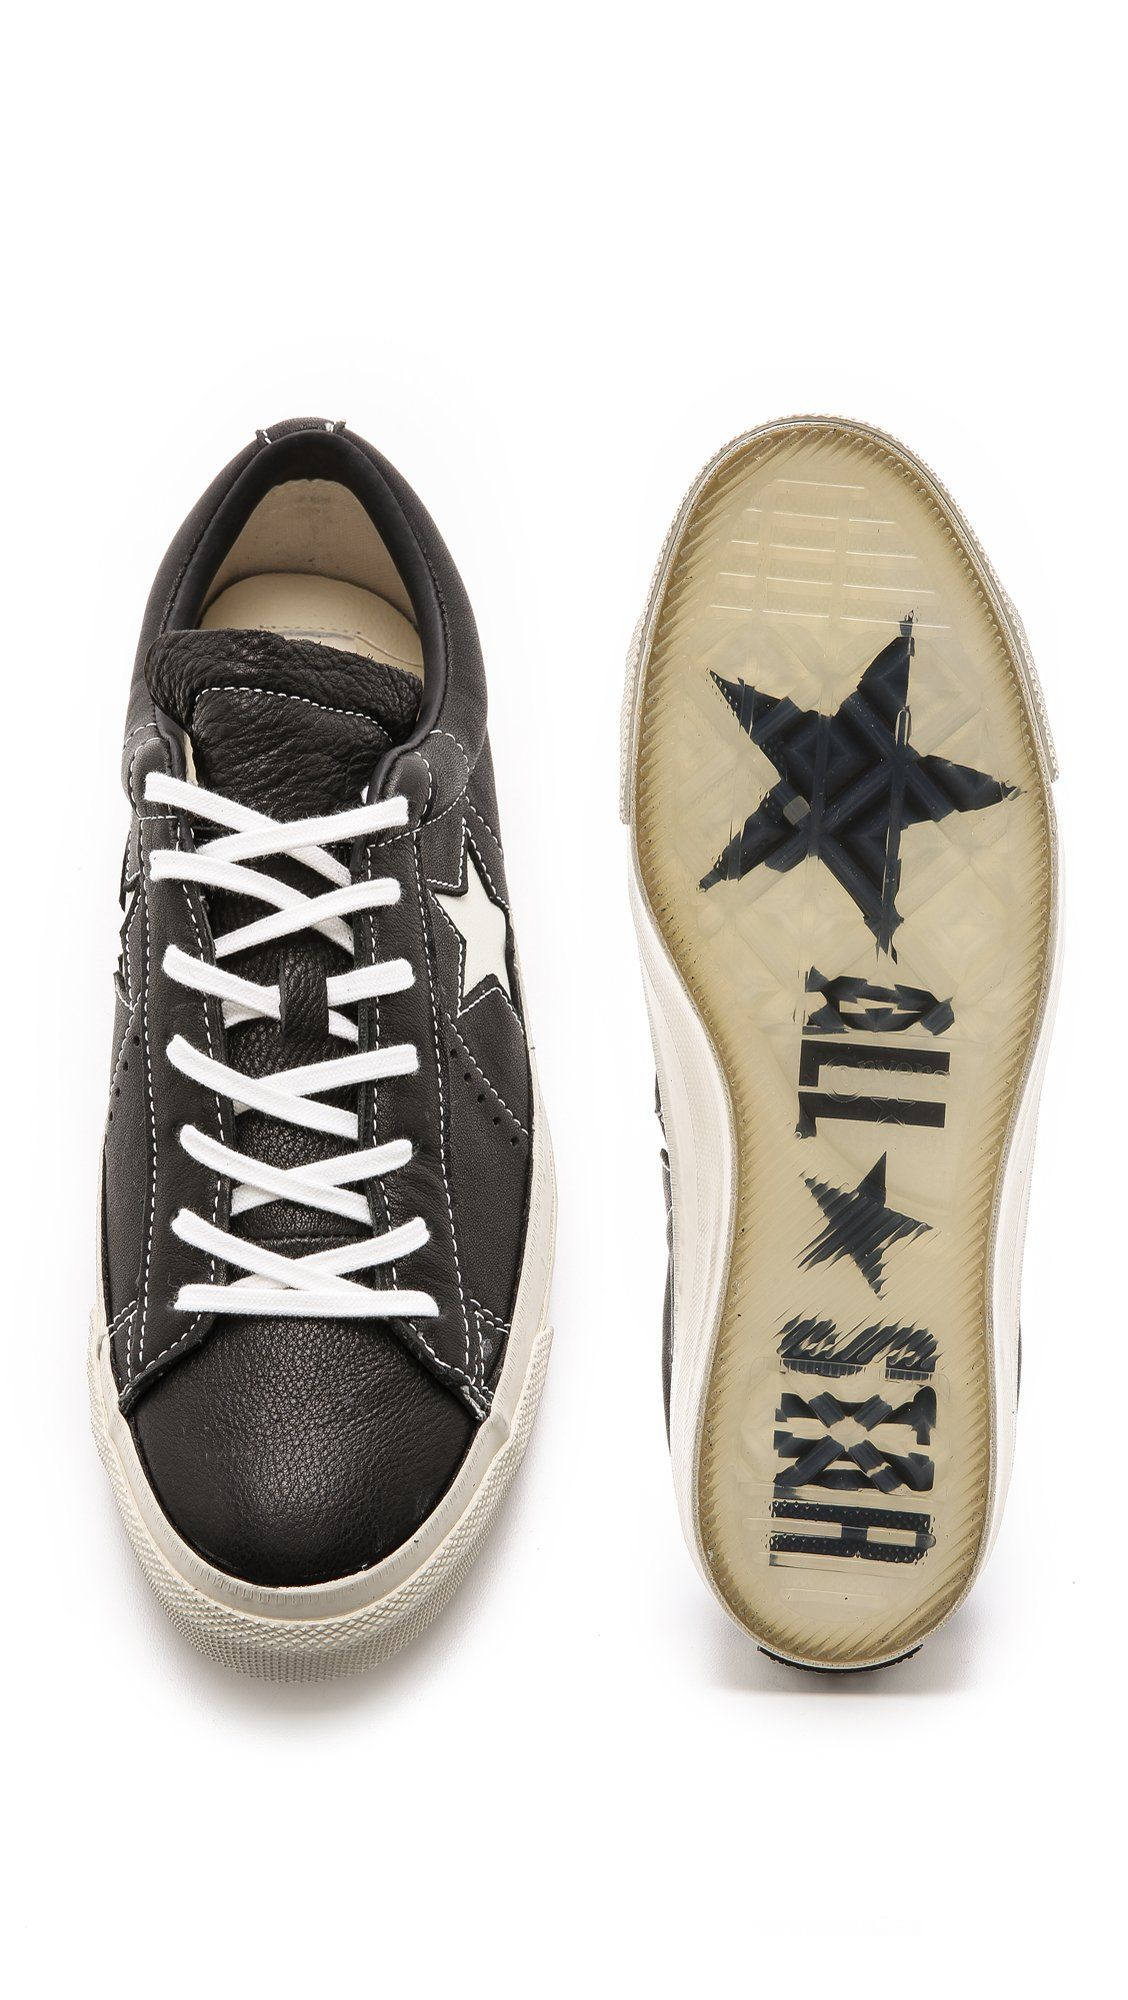 Converse john varvatos one star converse x john varvatos menu0027s john varvatos one star sneakers,  black/turtledove LNBNVLF